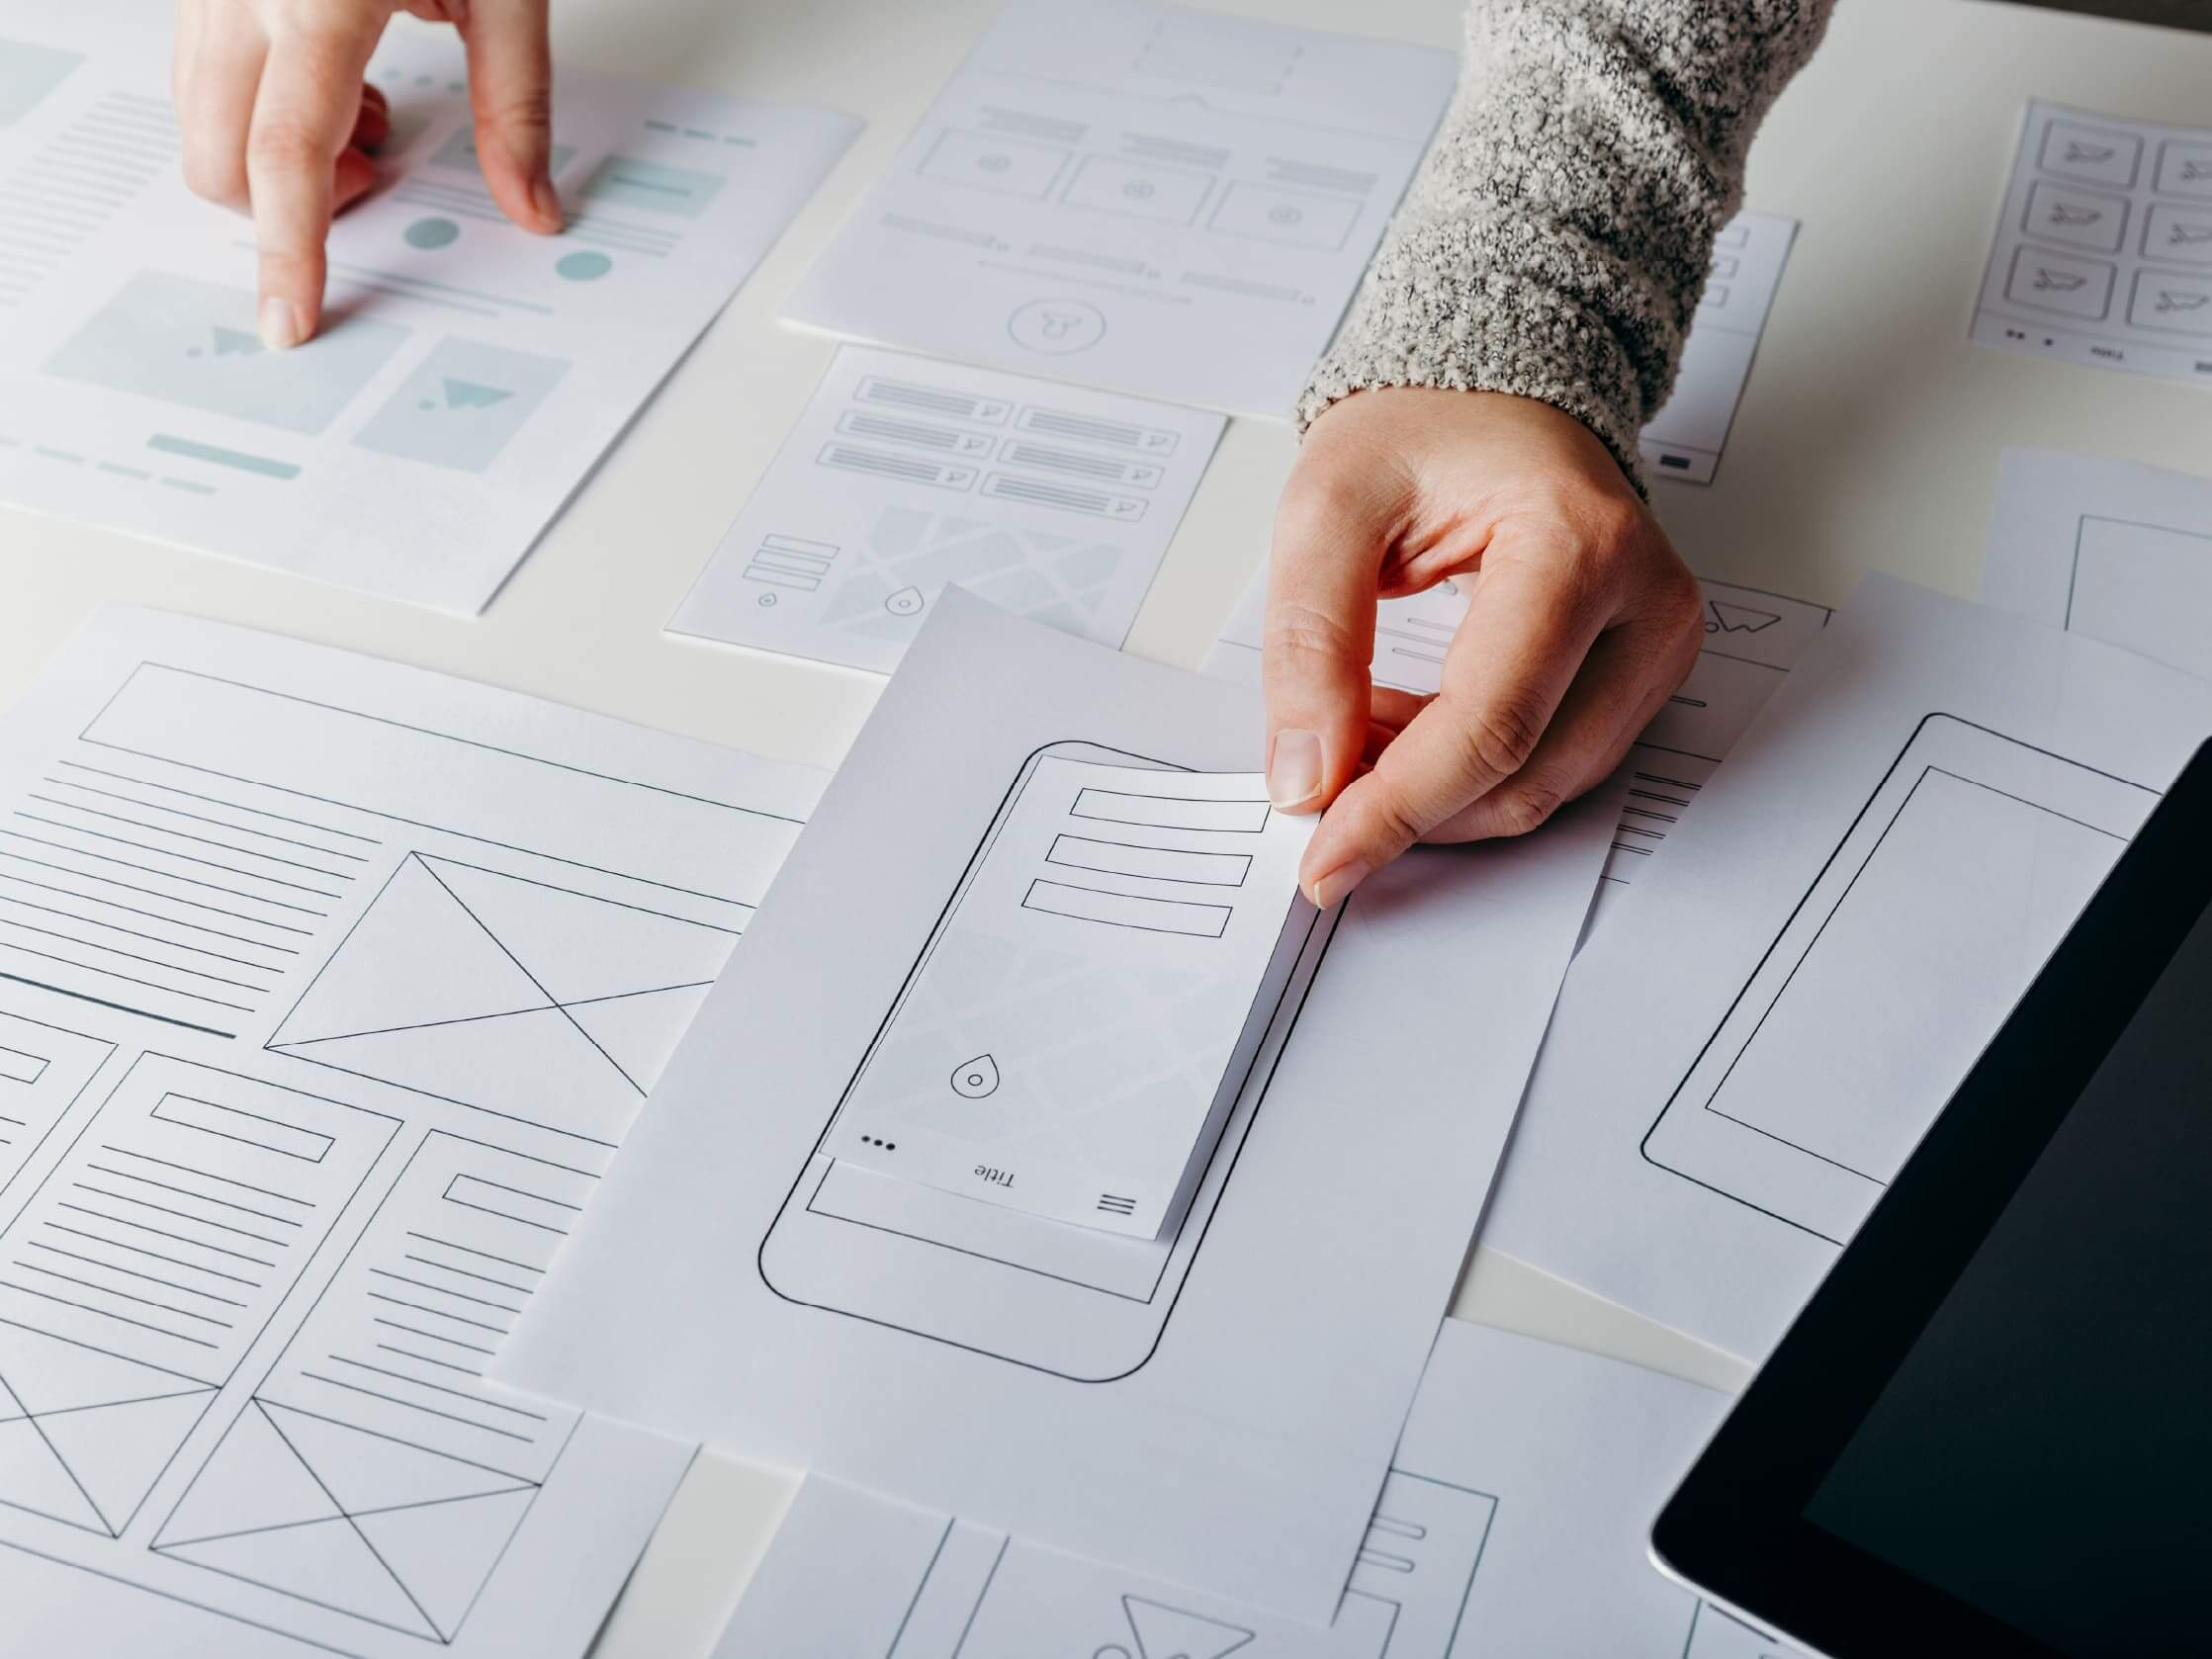 Design-wireframes